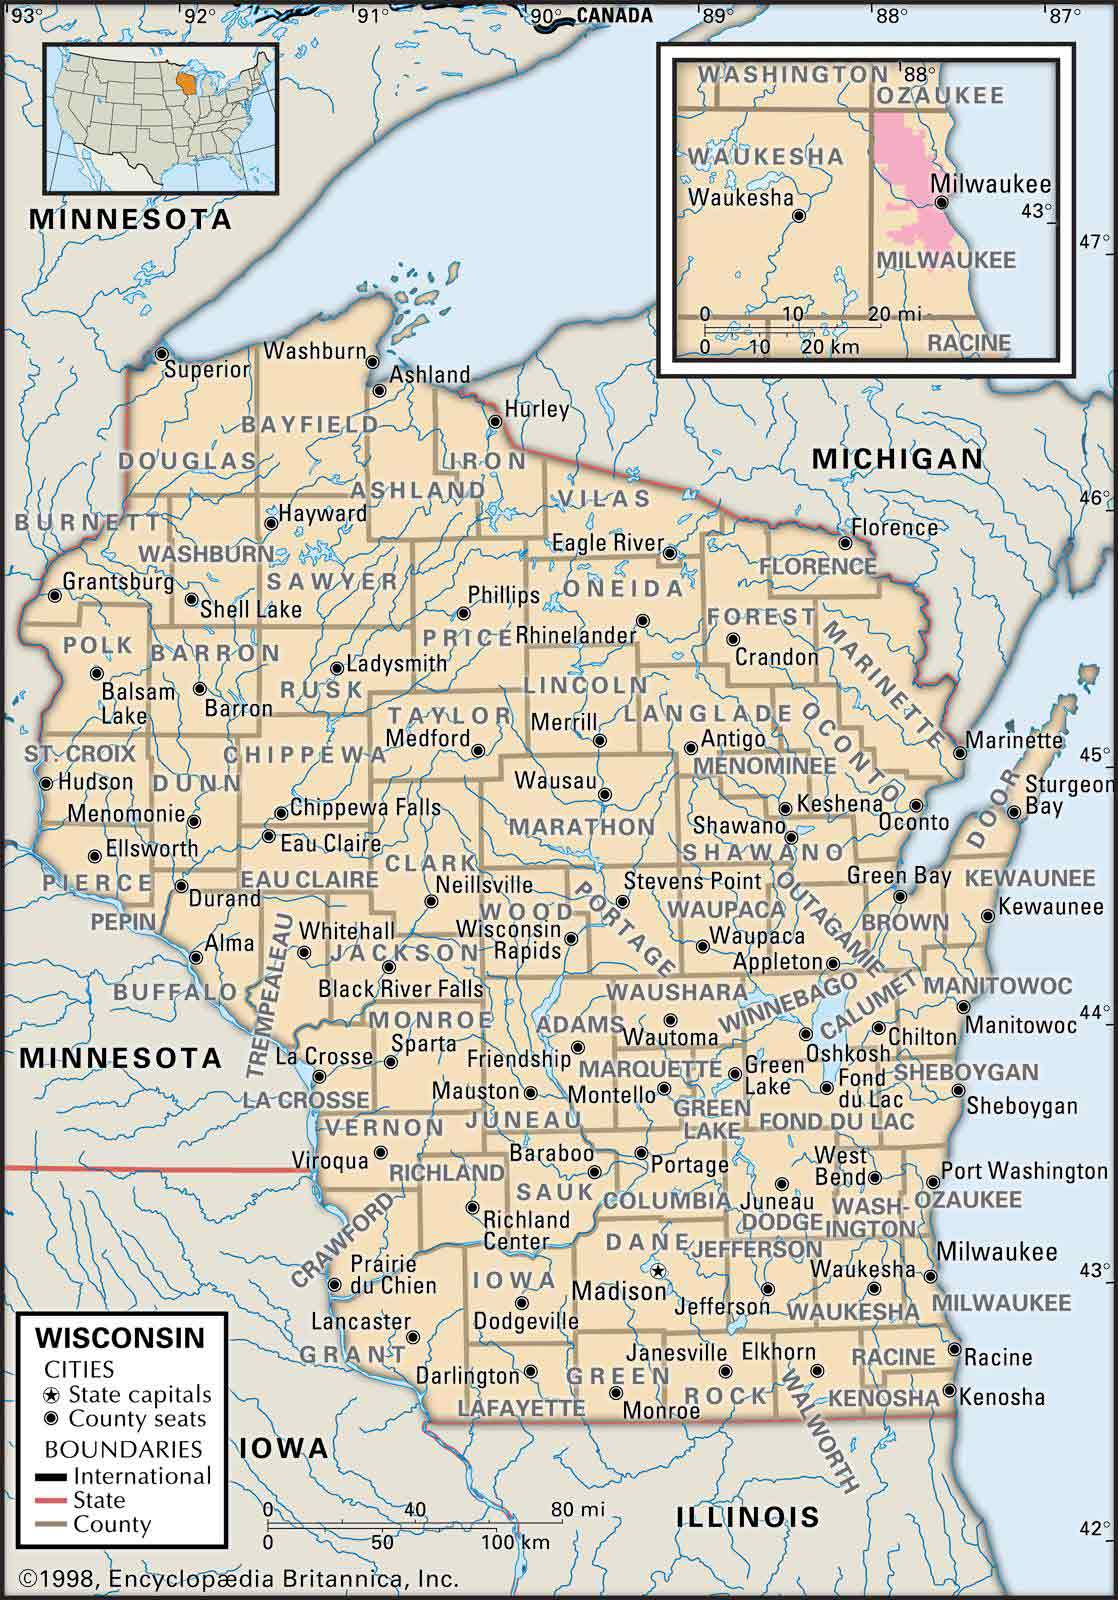 Old Historical City, County and State Maps of Wisconsin on map of algoma wi, map of city of madison wi, map of jacksonport wi, map of the fox valley wi, map of black river falls wi, map of ohio by county, map of washington island wi, map of liberty grove wi, map of green bay wi, map of apostle islands wi, map of menomonie wi, map of racine wi, map of de soto wi, map of wisconsin, map of lakewood wi, map of beloit wi, map of peninsula state park wi, map of castle rock lake wi, map of baileys harbor wi,